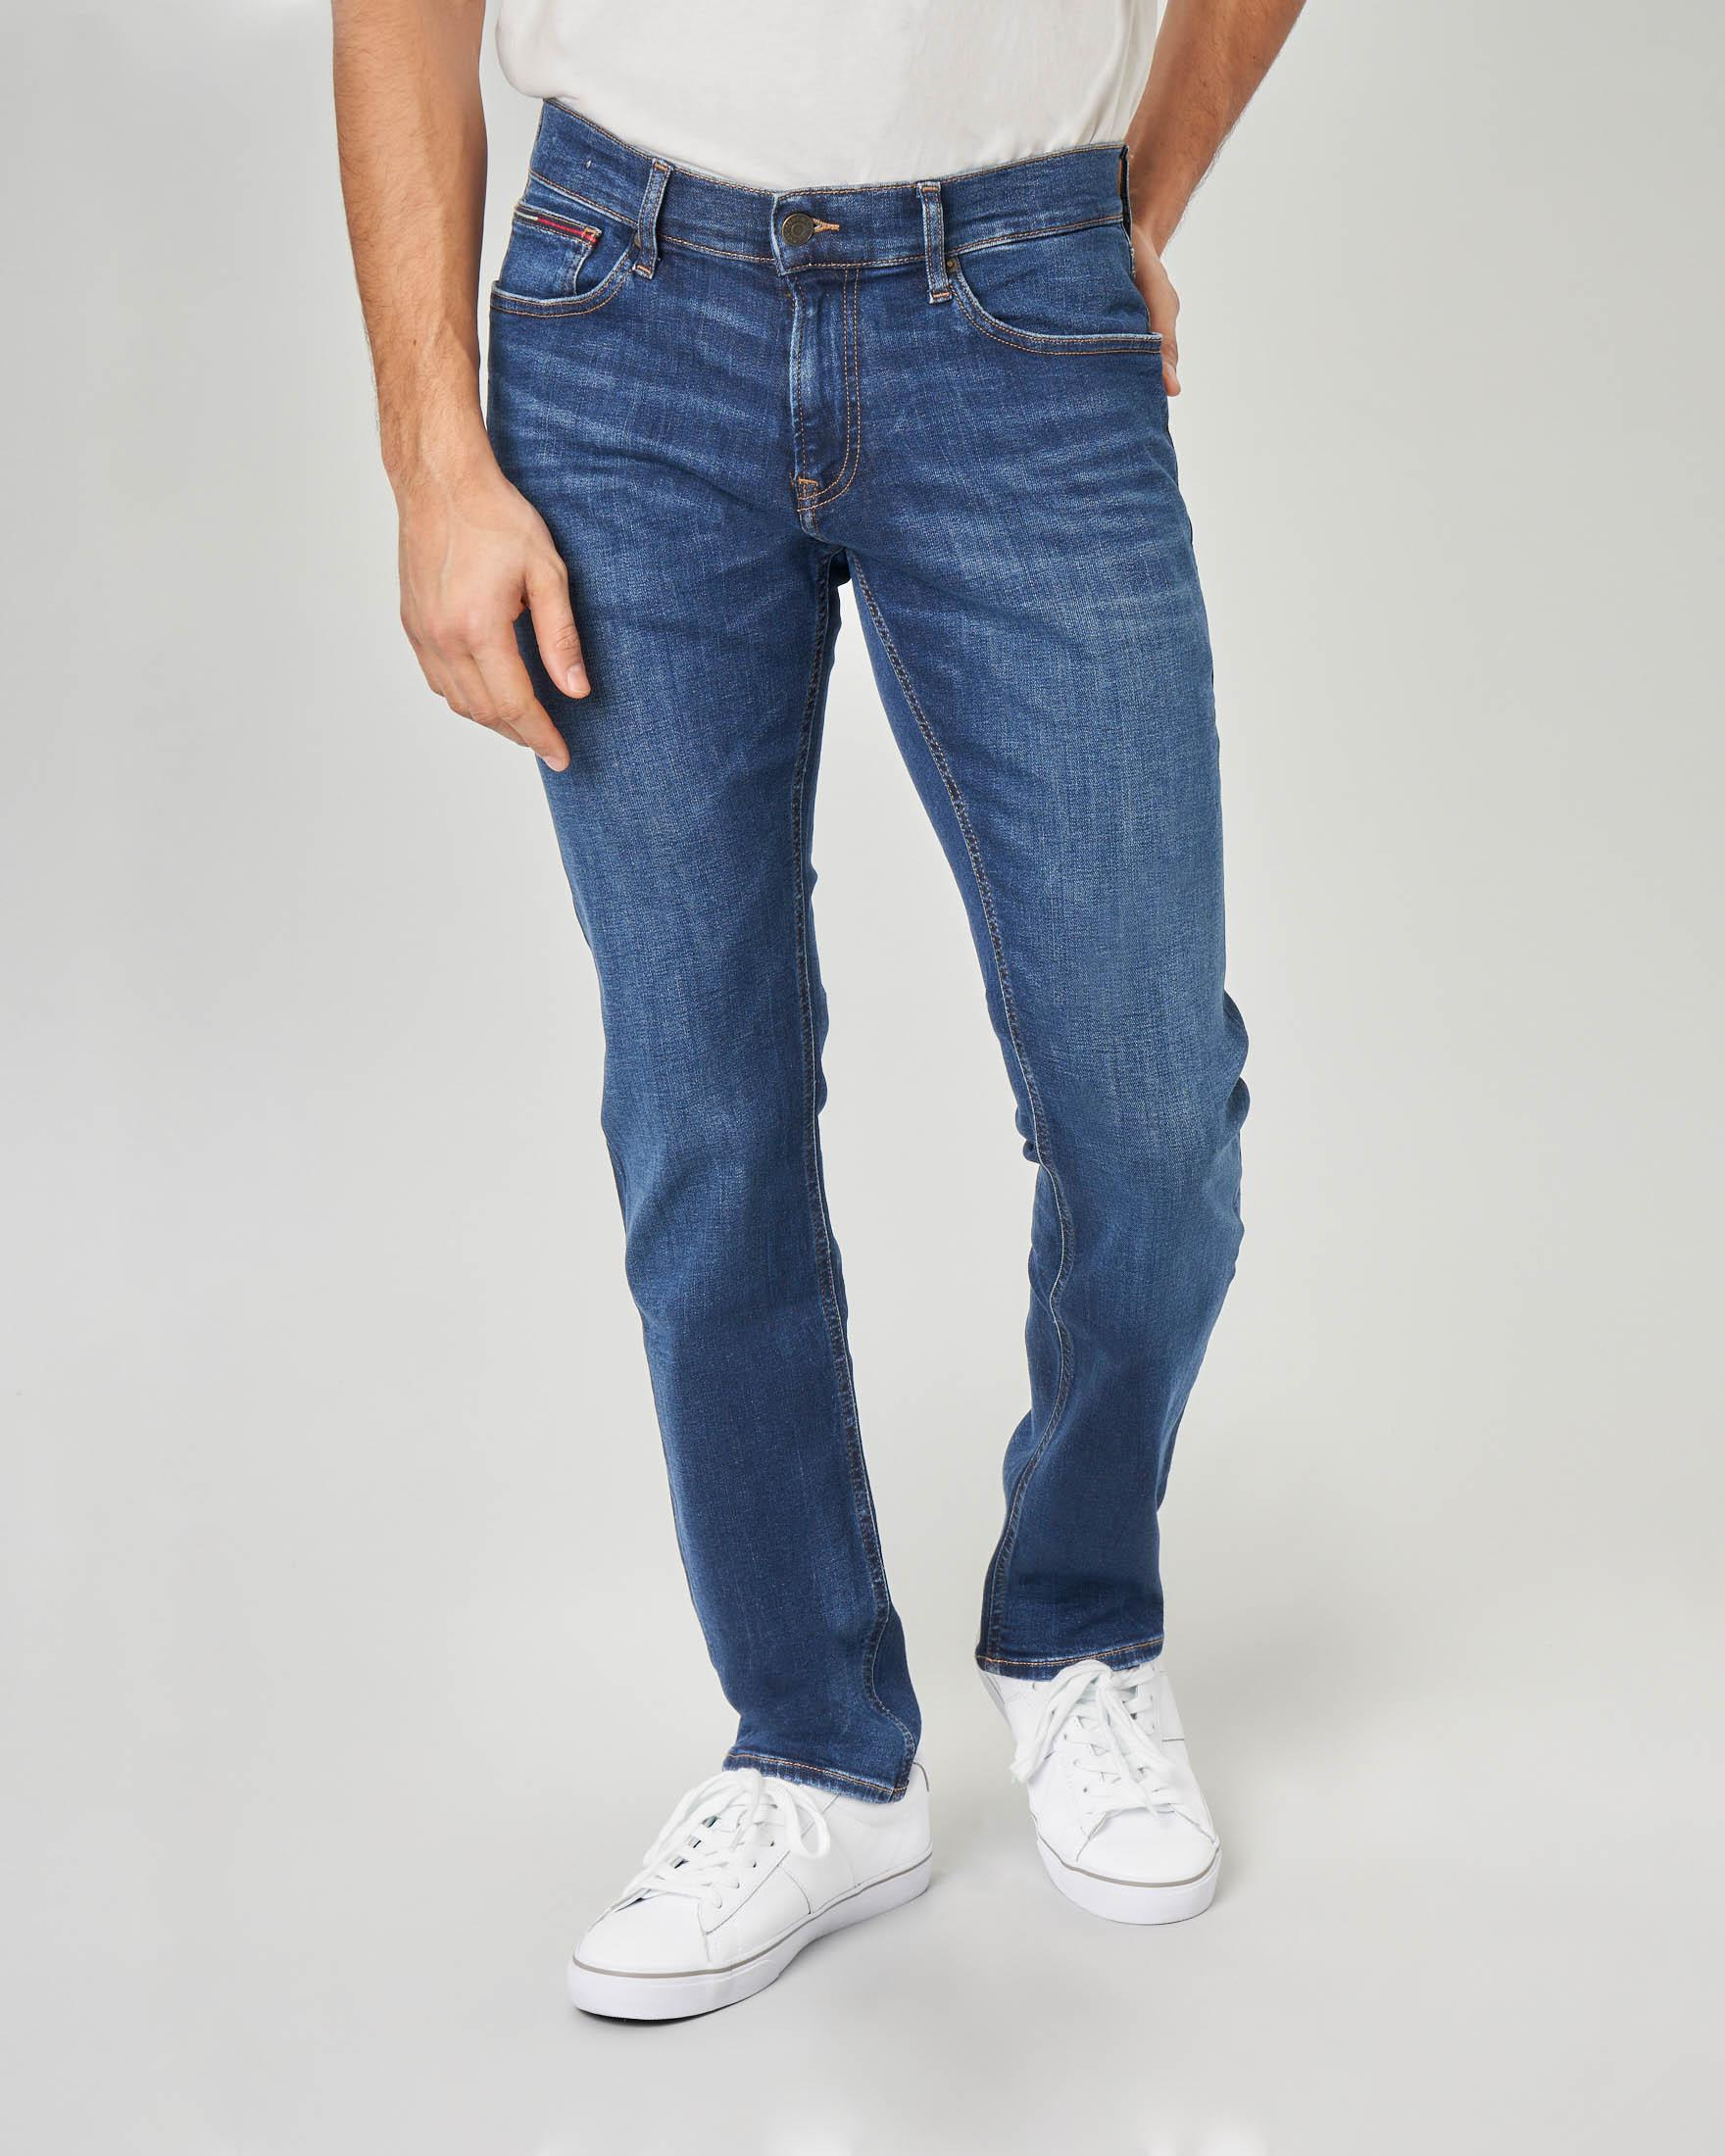 Jeans Scanton slim-fit stone wash